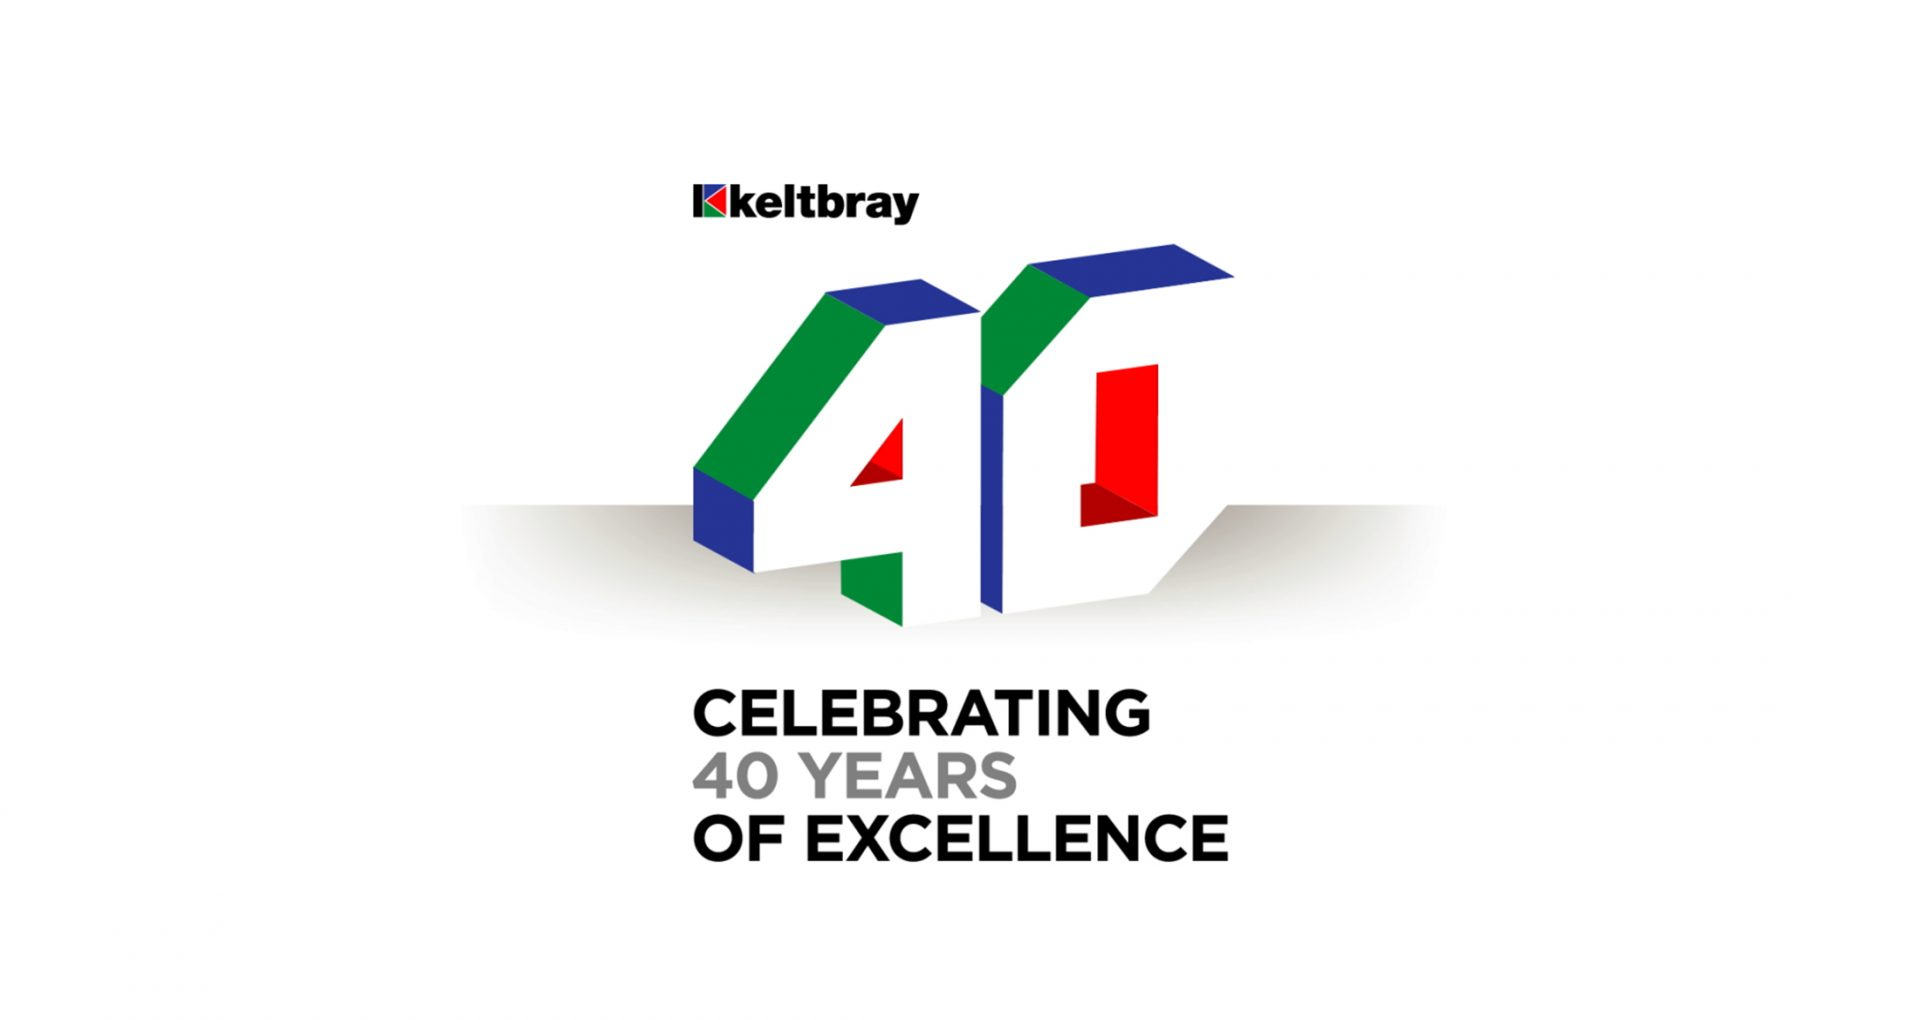 Keltbray: 40 Years of Excellence - Thieves Kitchen